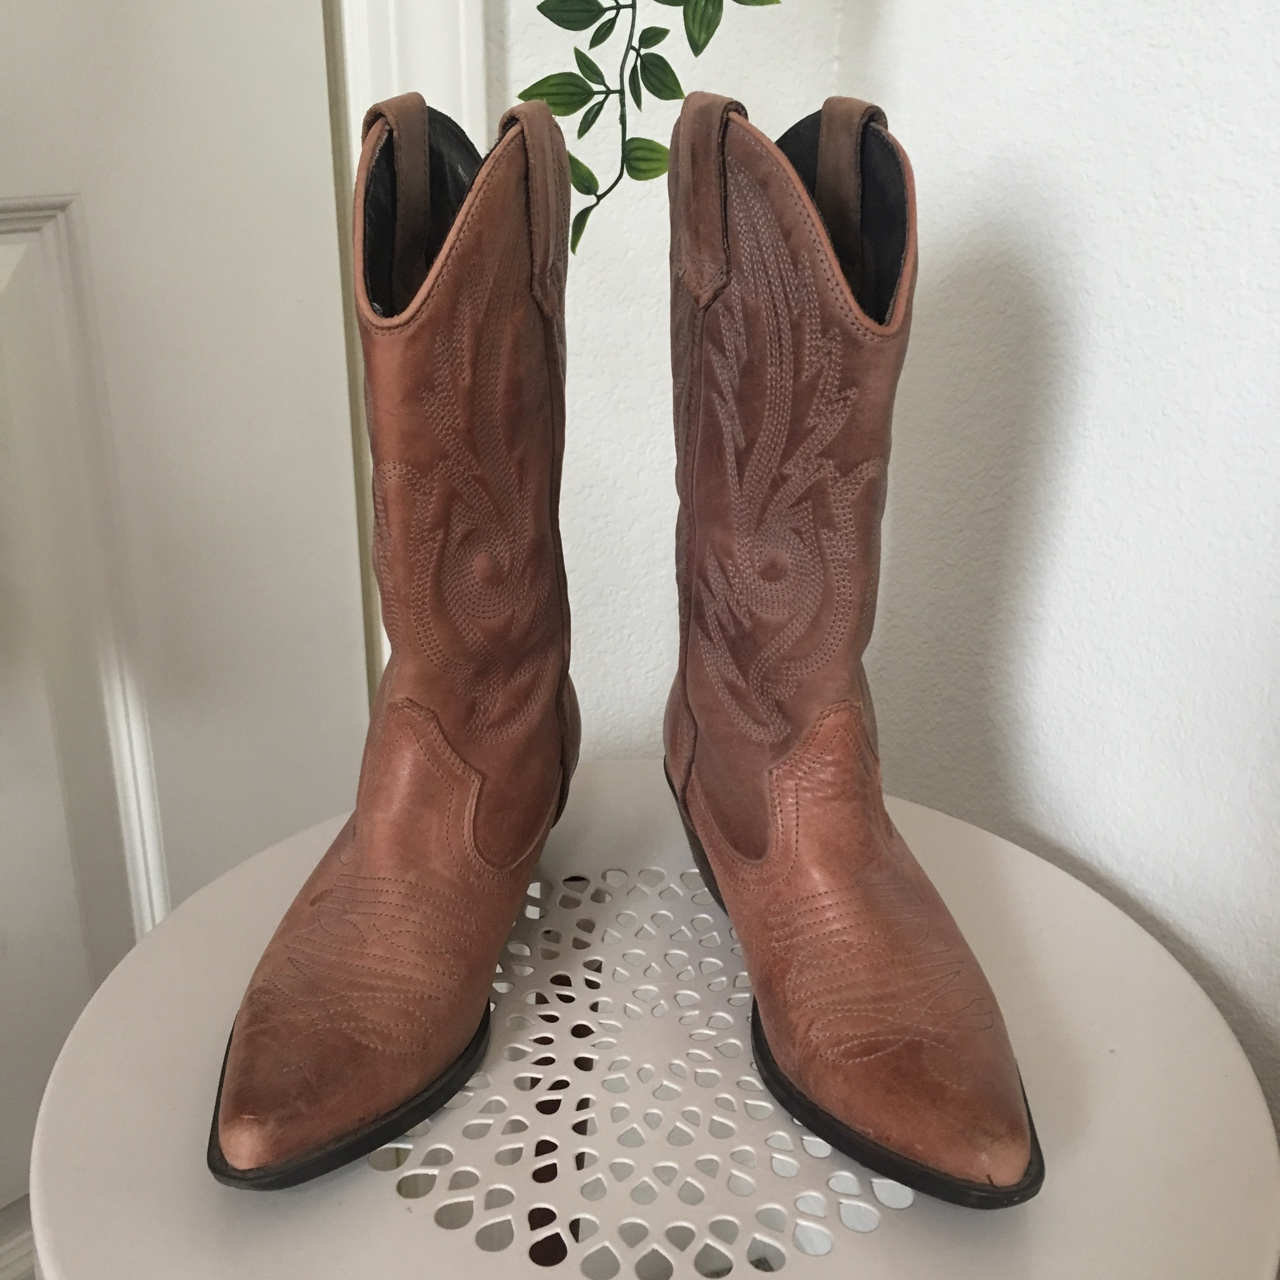 a505f7e4f06 Aldo western boots Size 37 They show some natural... - Depop